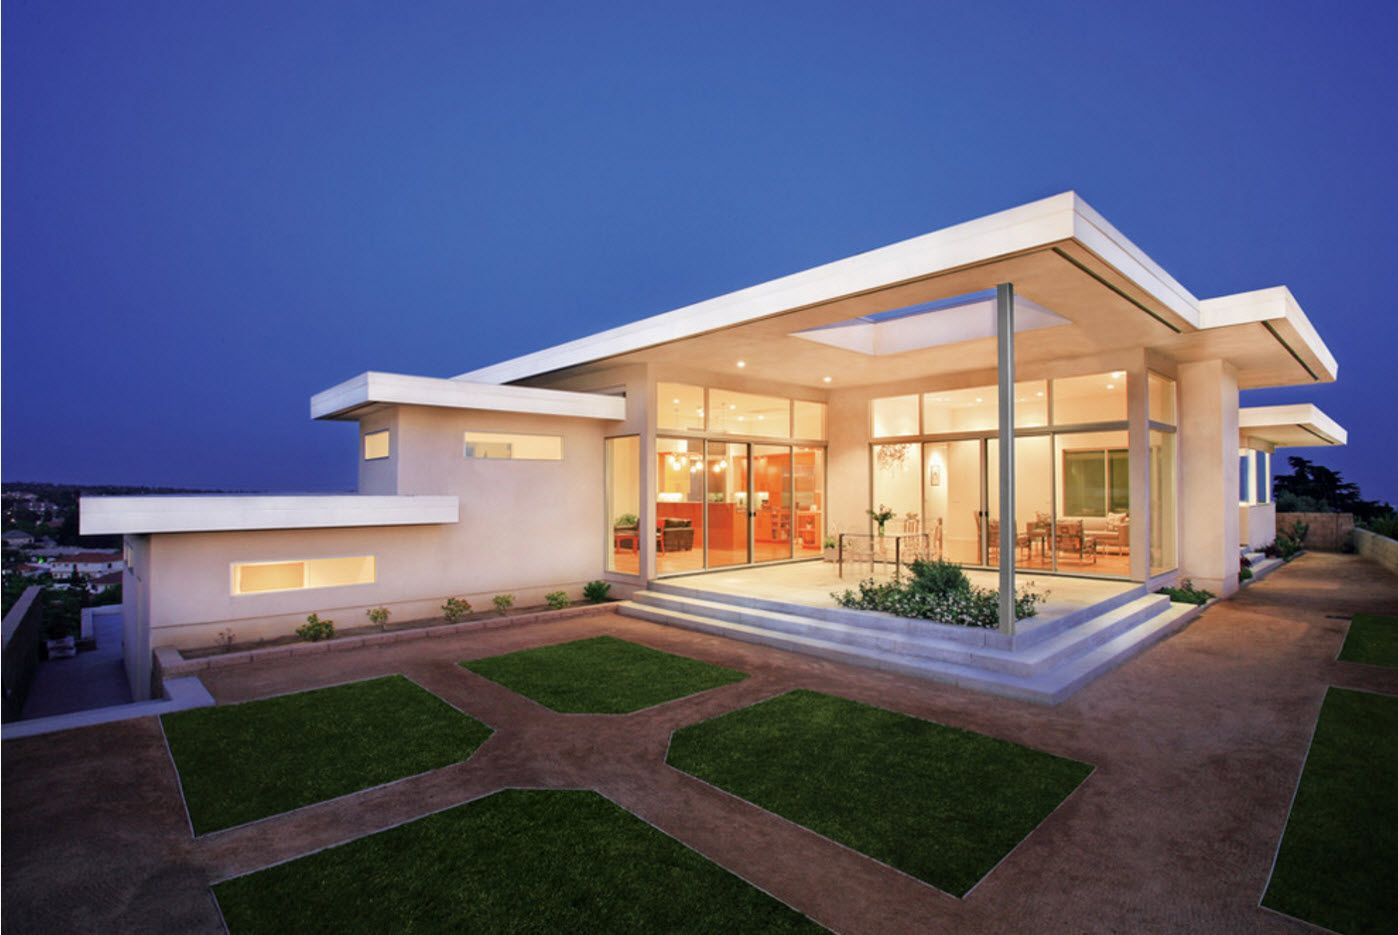 100+ Private House Roofs Beautiful Design Ideas. Modern glass-and-steel house with flat top